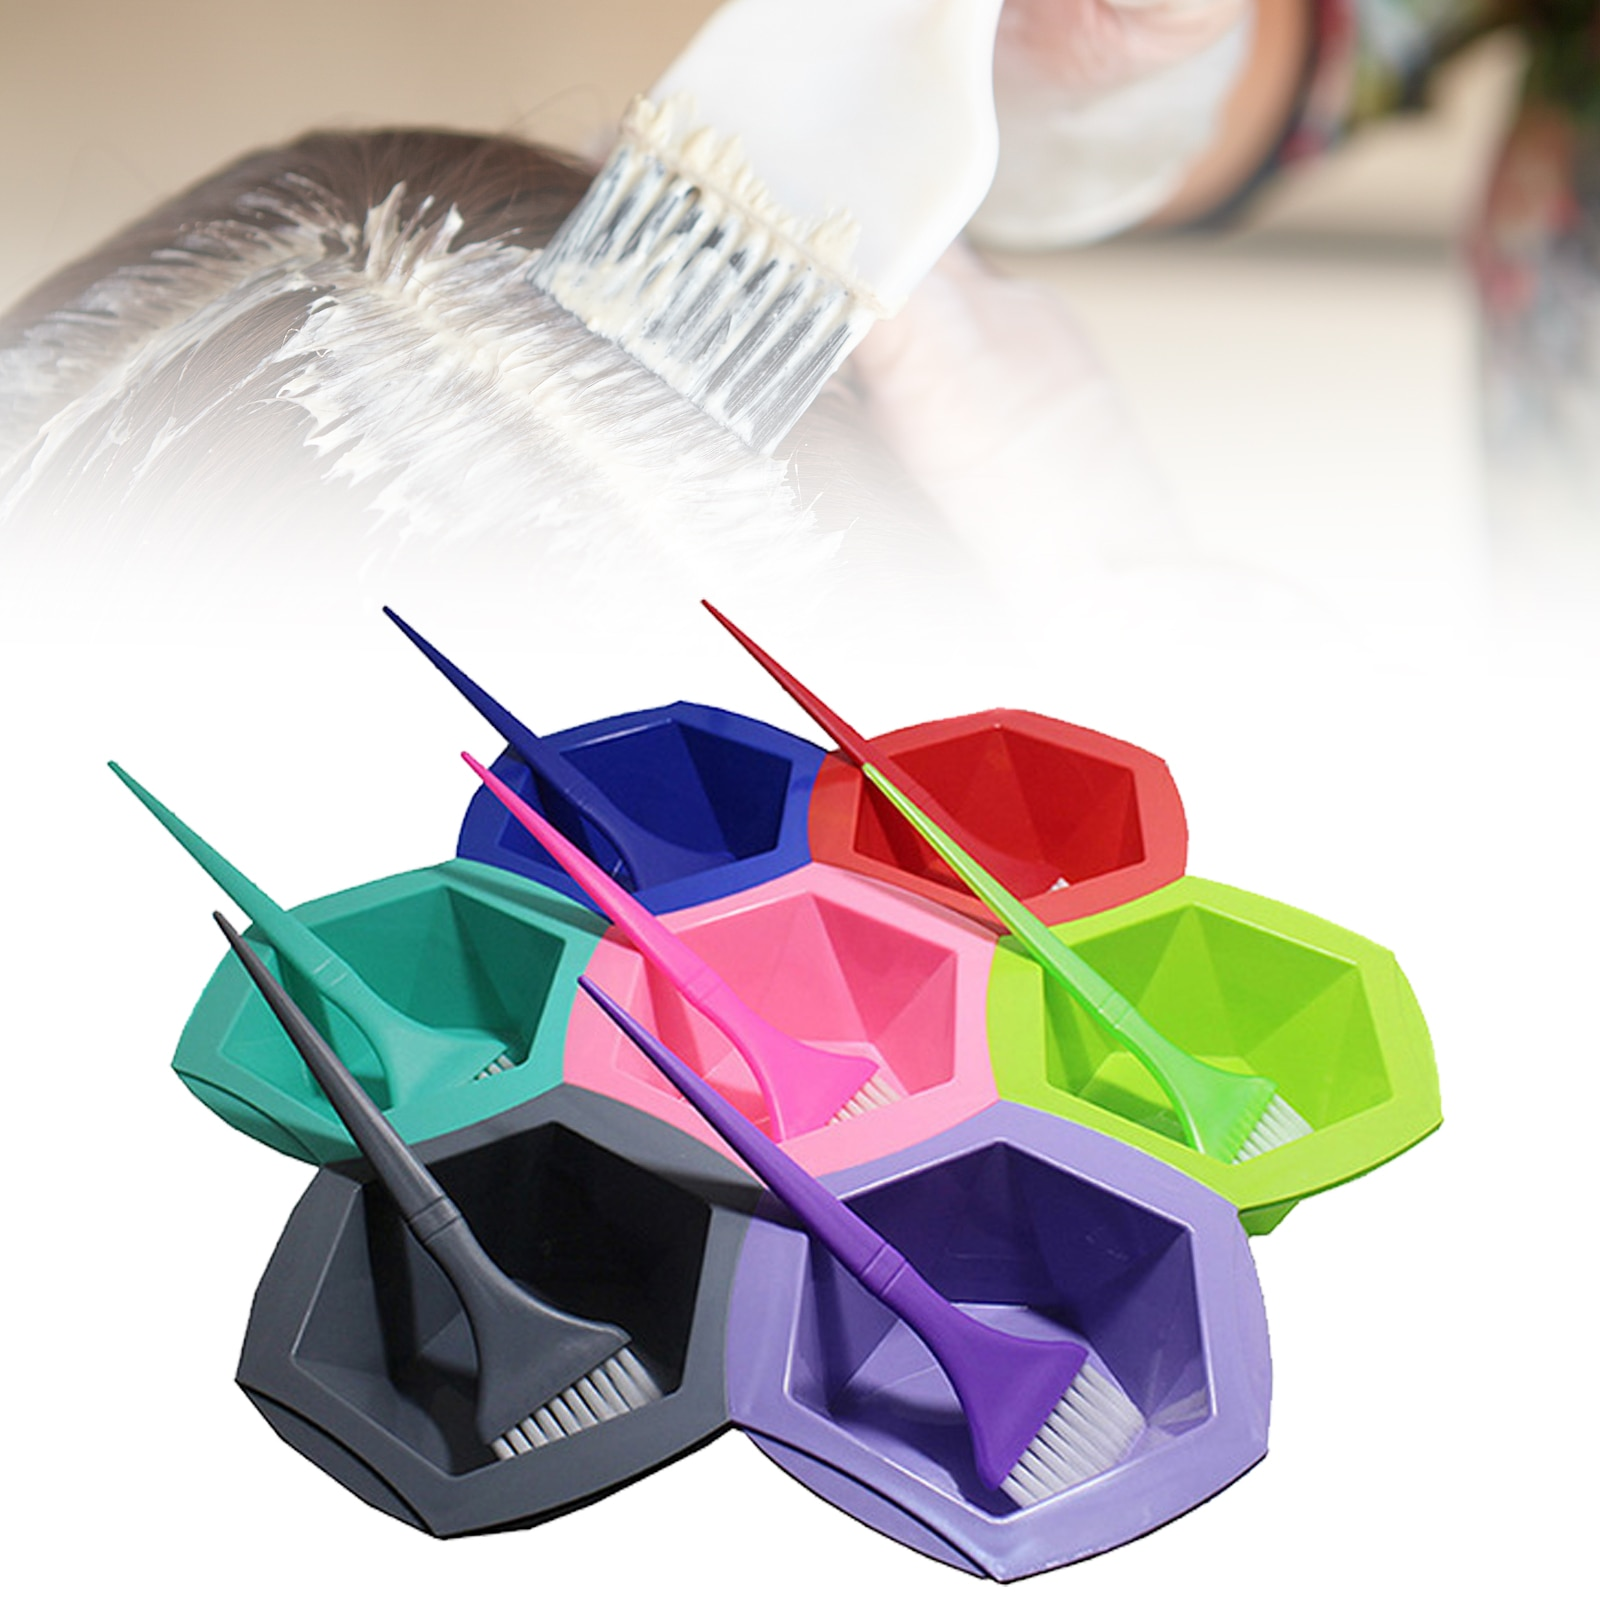 7pcs/set Colorful Hair Dying Brushes Plastic Easy-cleaning Stirring Bowl For Pro Salon Barber Hairdressing Tools